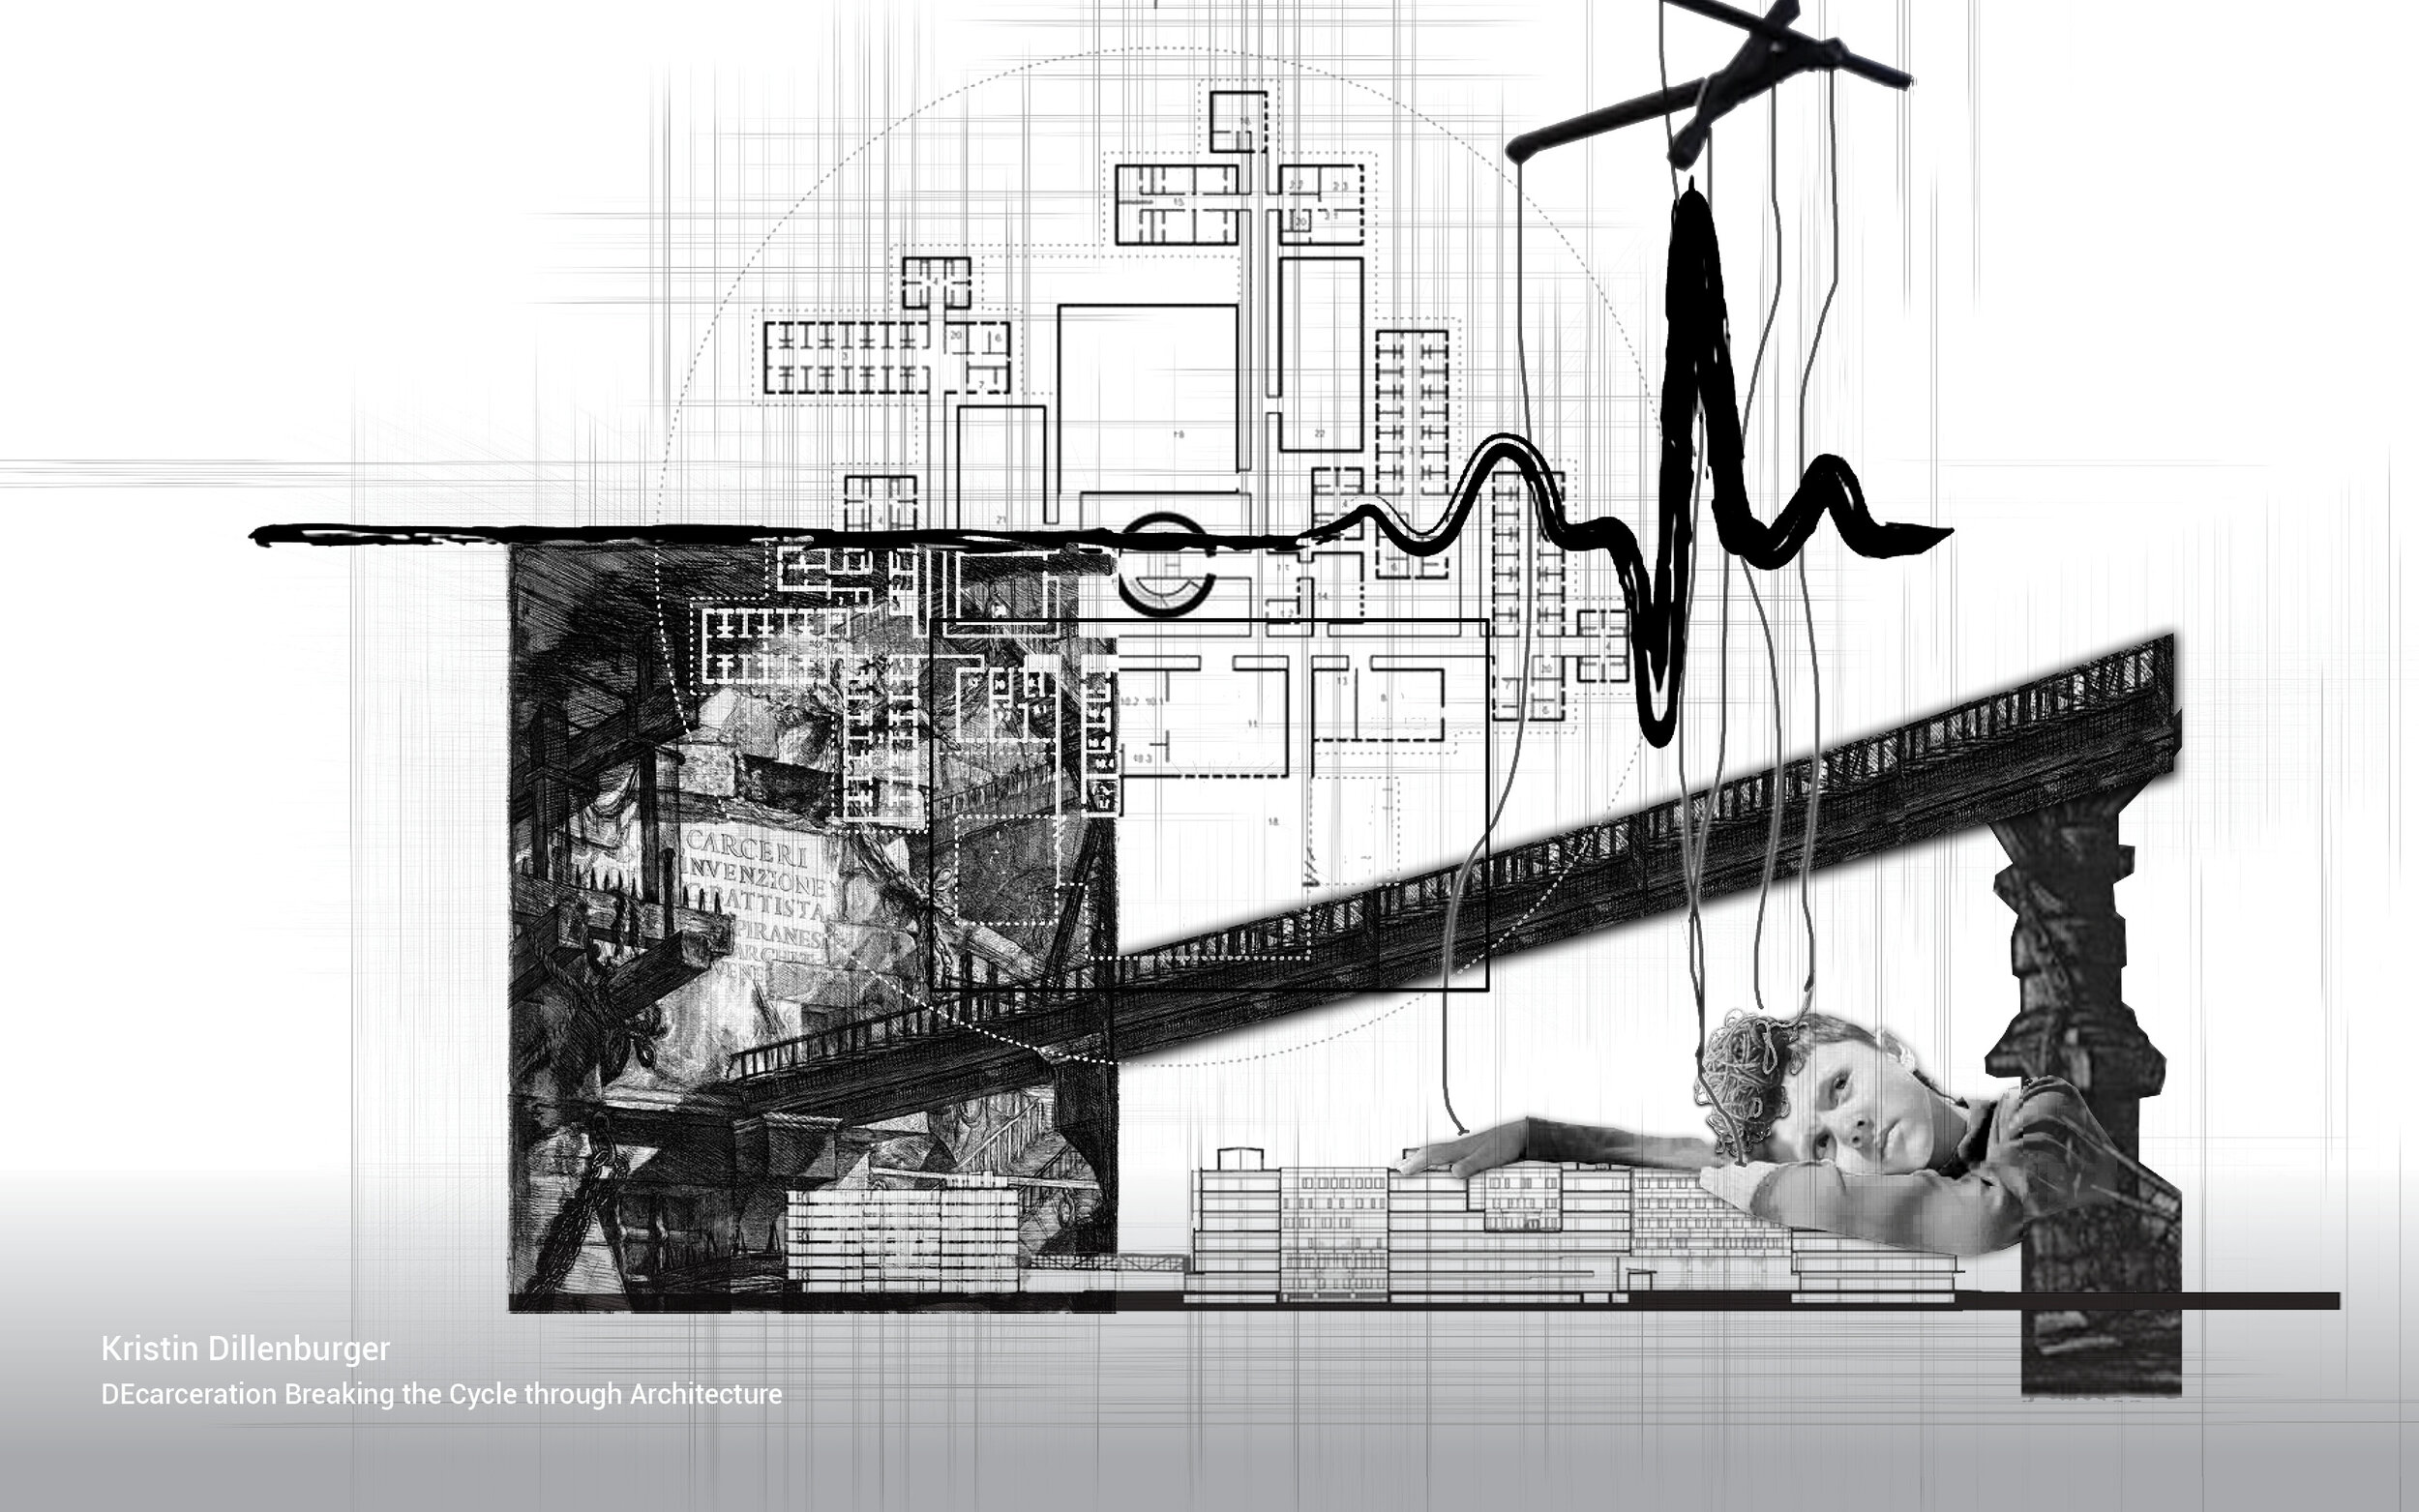 Kristin Dillenburger_DEcarceration Breaking the Cycle through Architecture.jpg